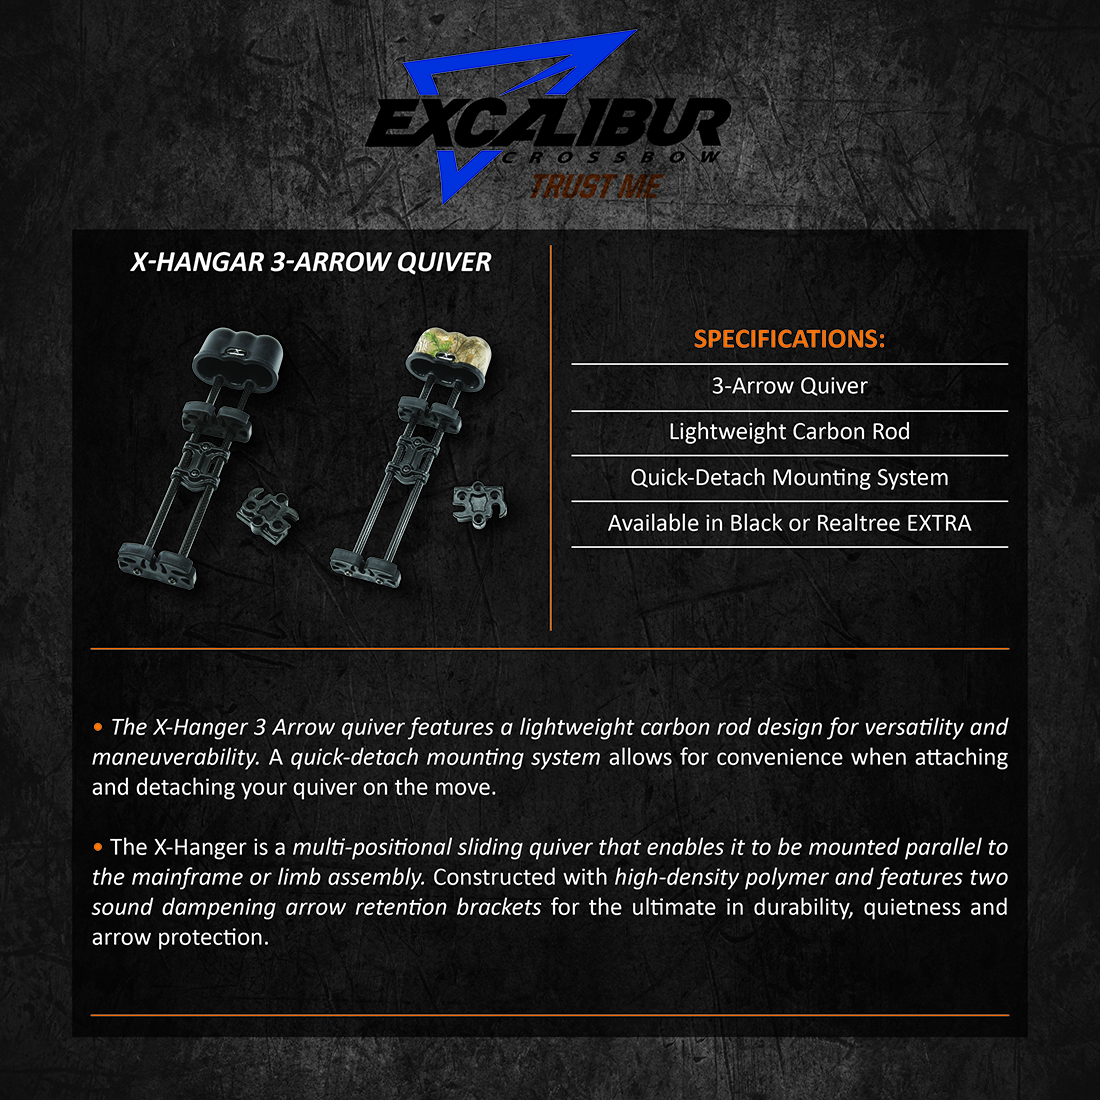 Excalibur_XHangar_3Arrow_Quiver_Product_Description